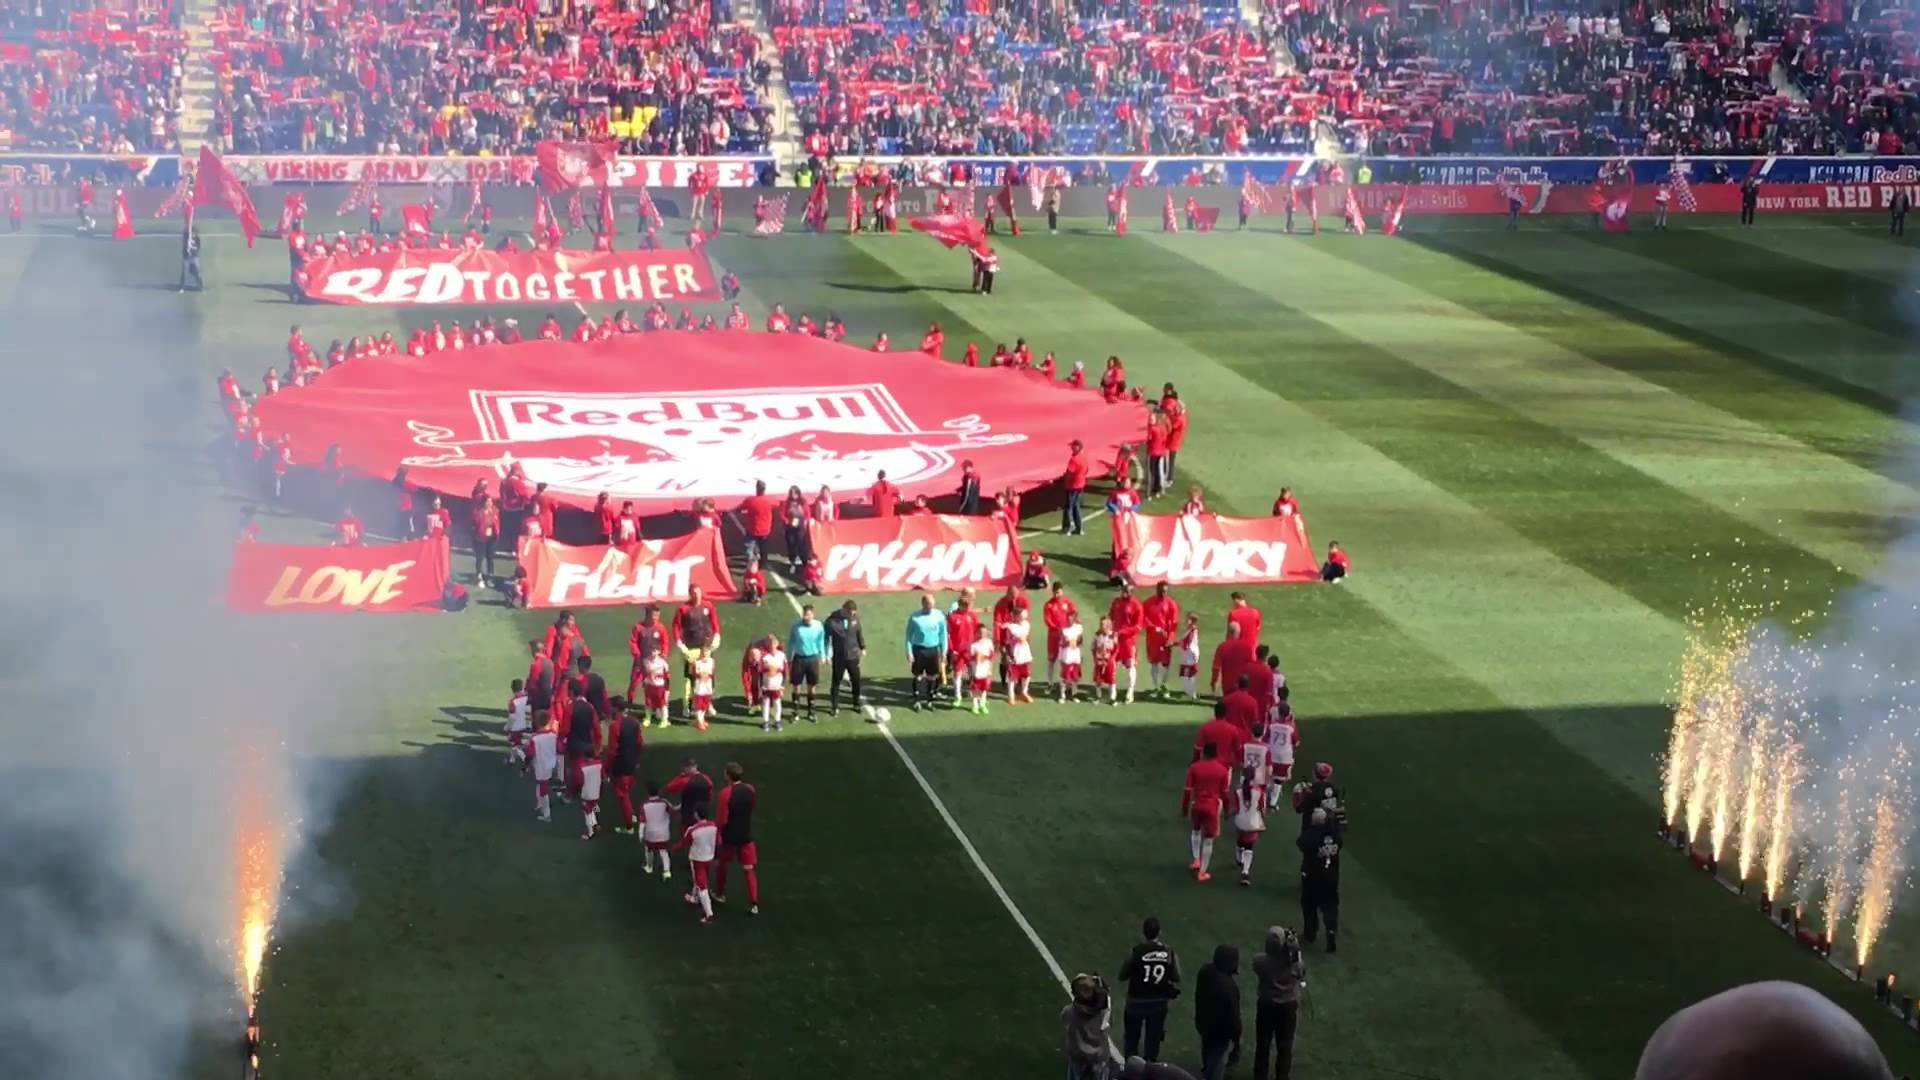 1920x1080 New York Red Bulls Opening Day 2016